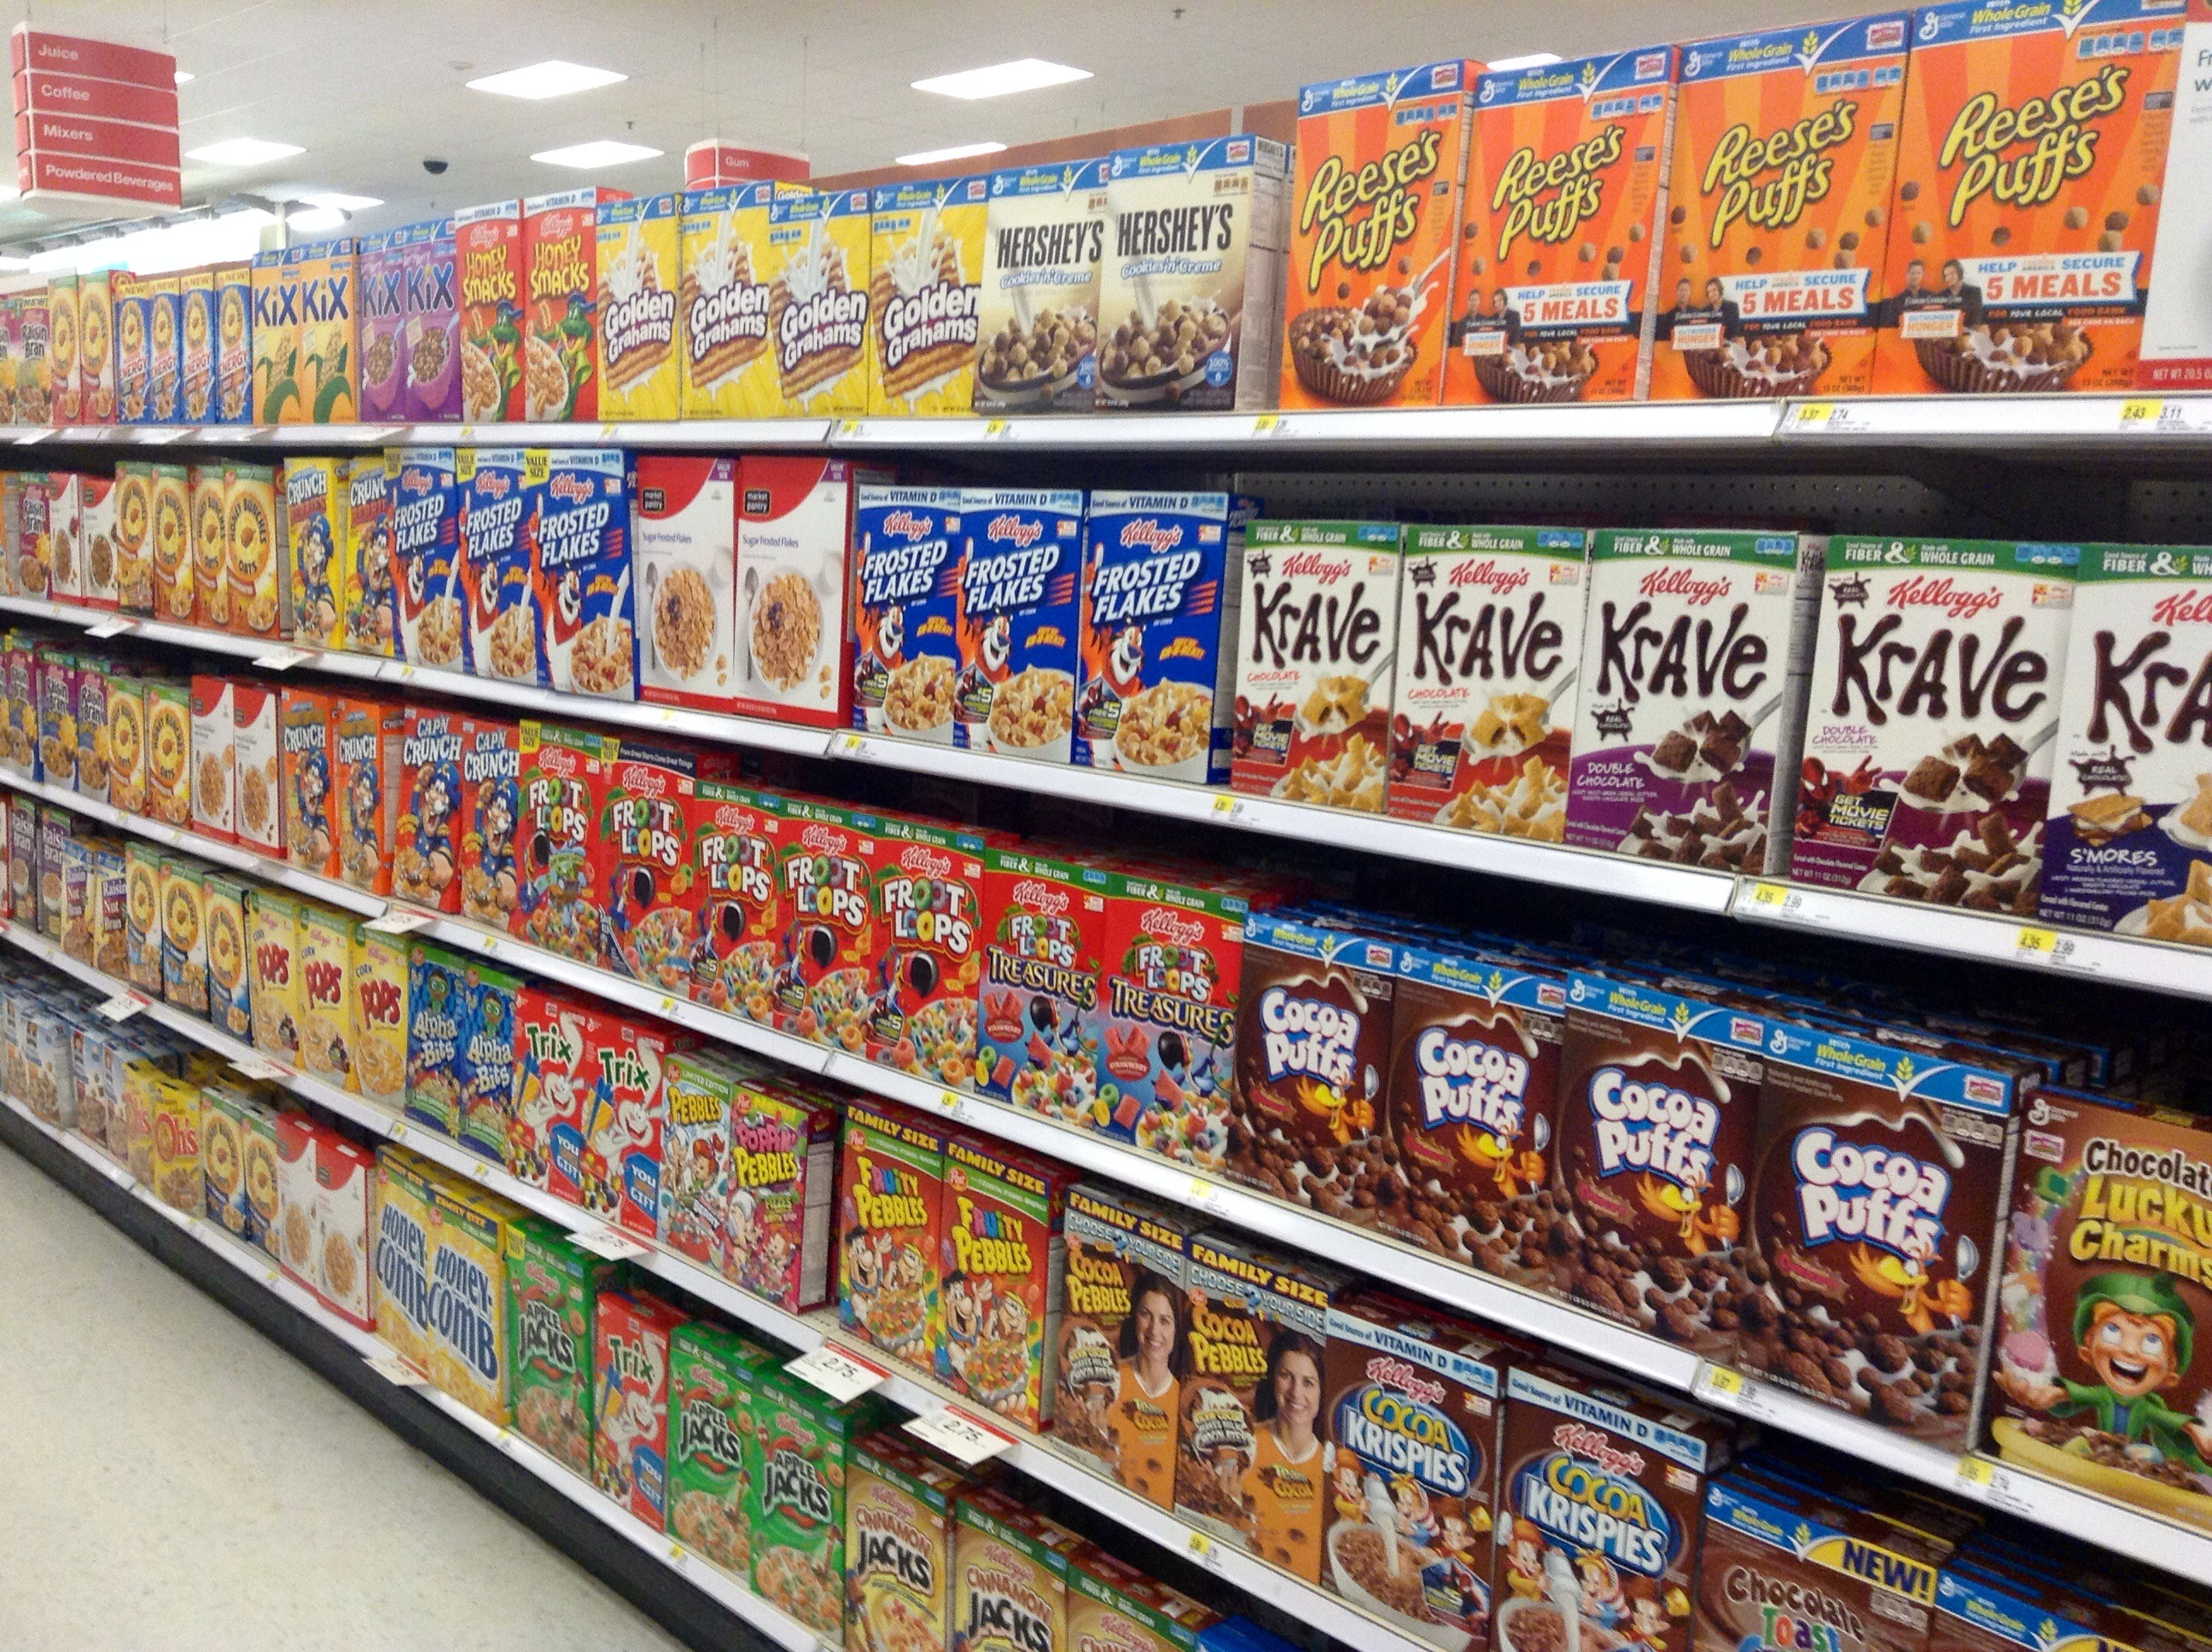 Breakfast cereals in aisle of supermarket.